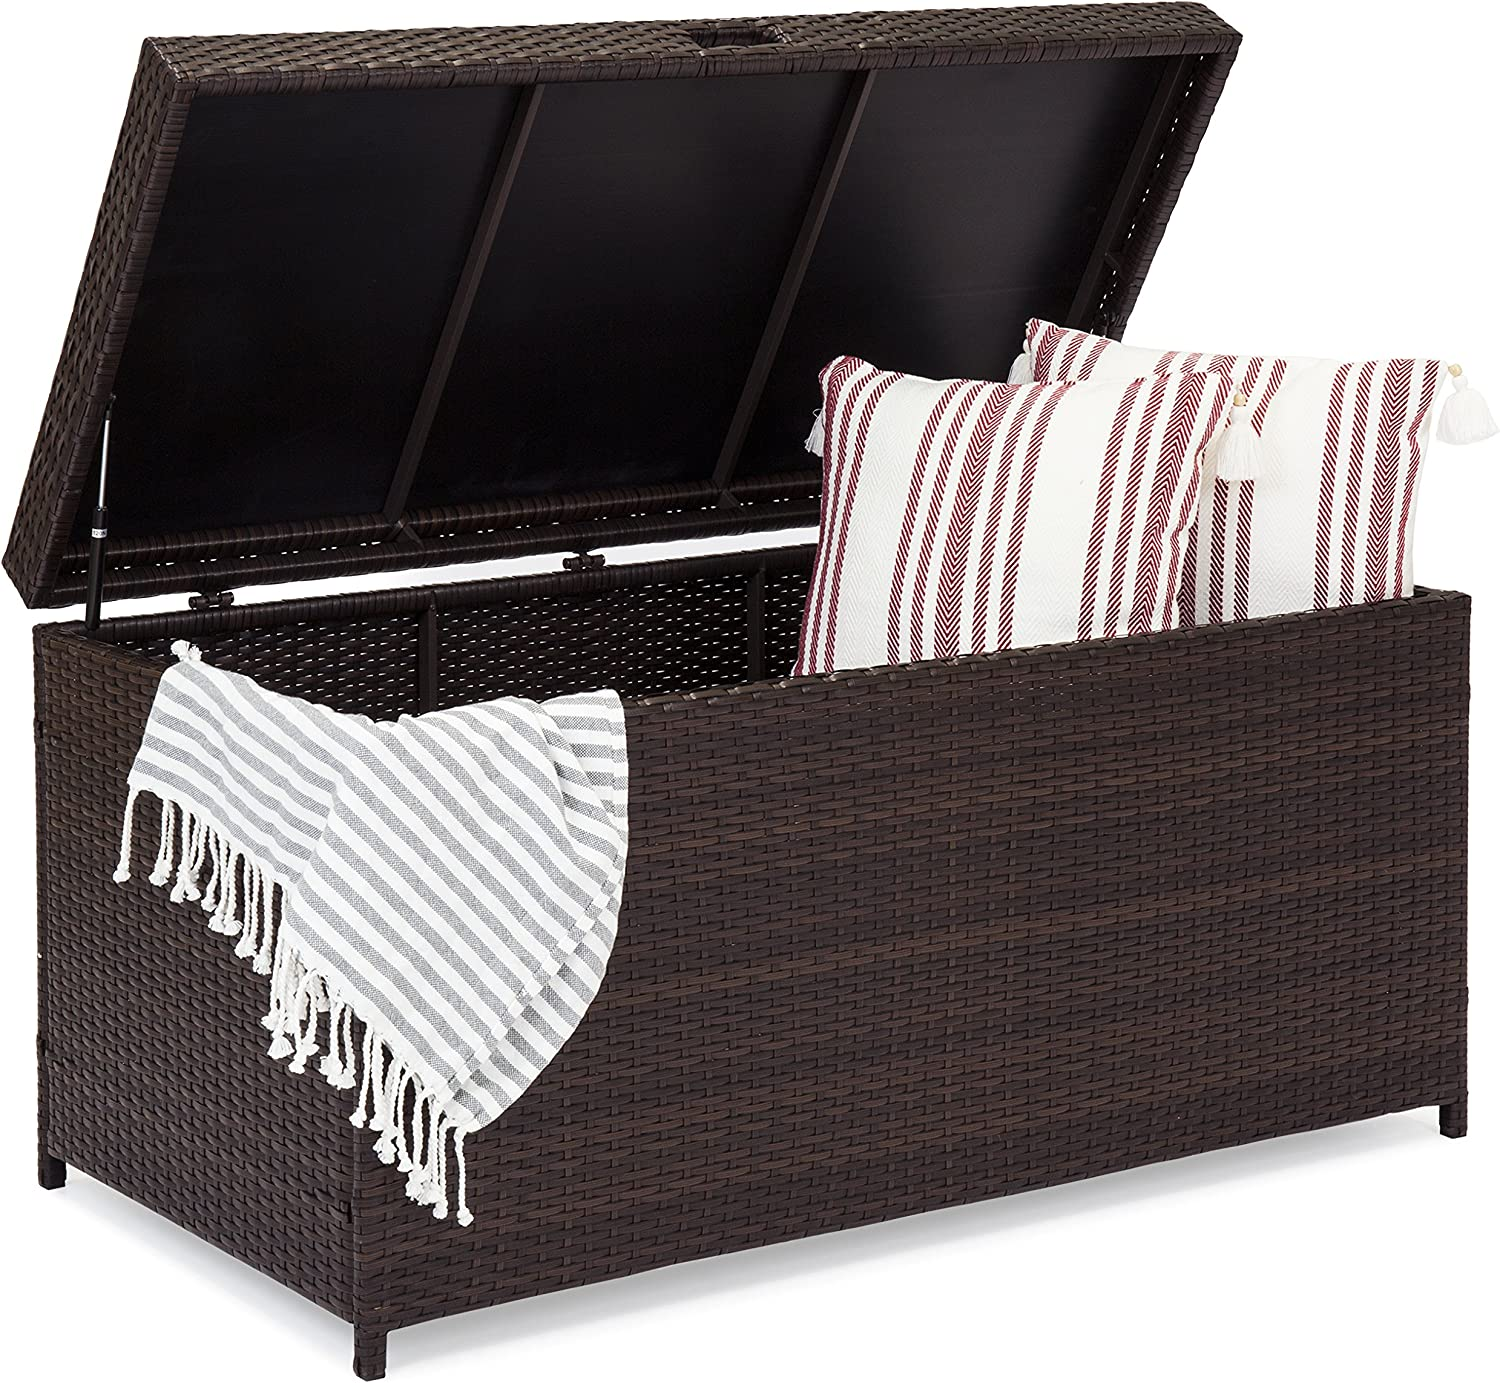 Best Choice Products Outdoor Wicker Patio Furniture Deck Storage Box for Cushions, Pillows, Pool Accessories